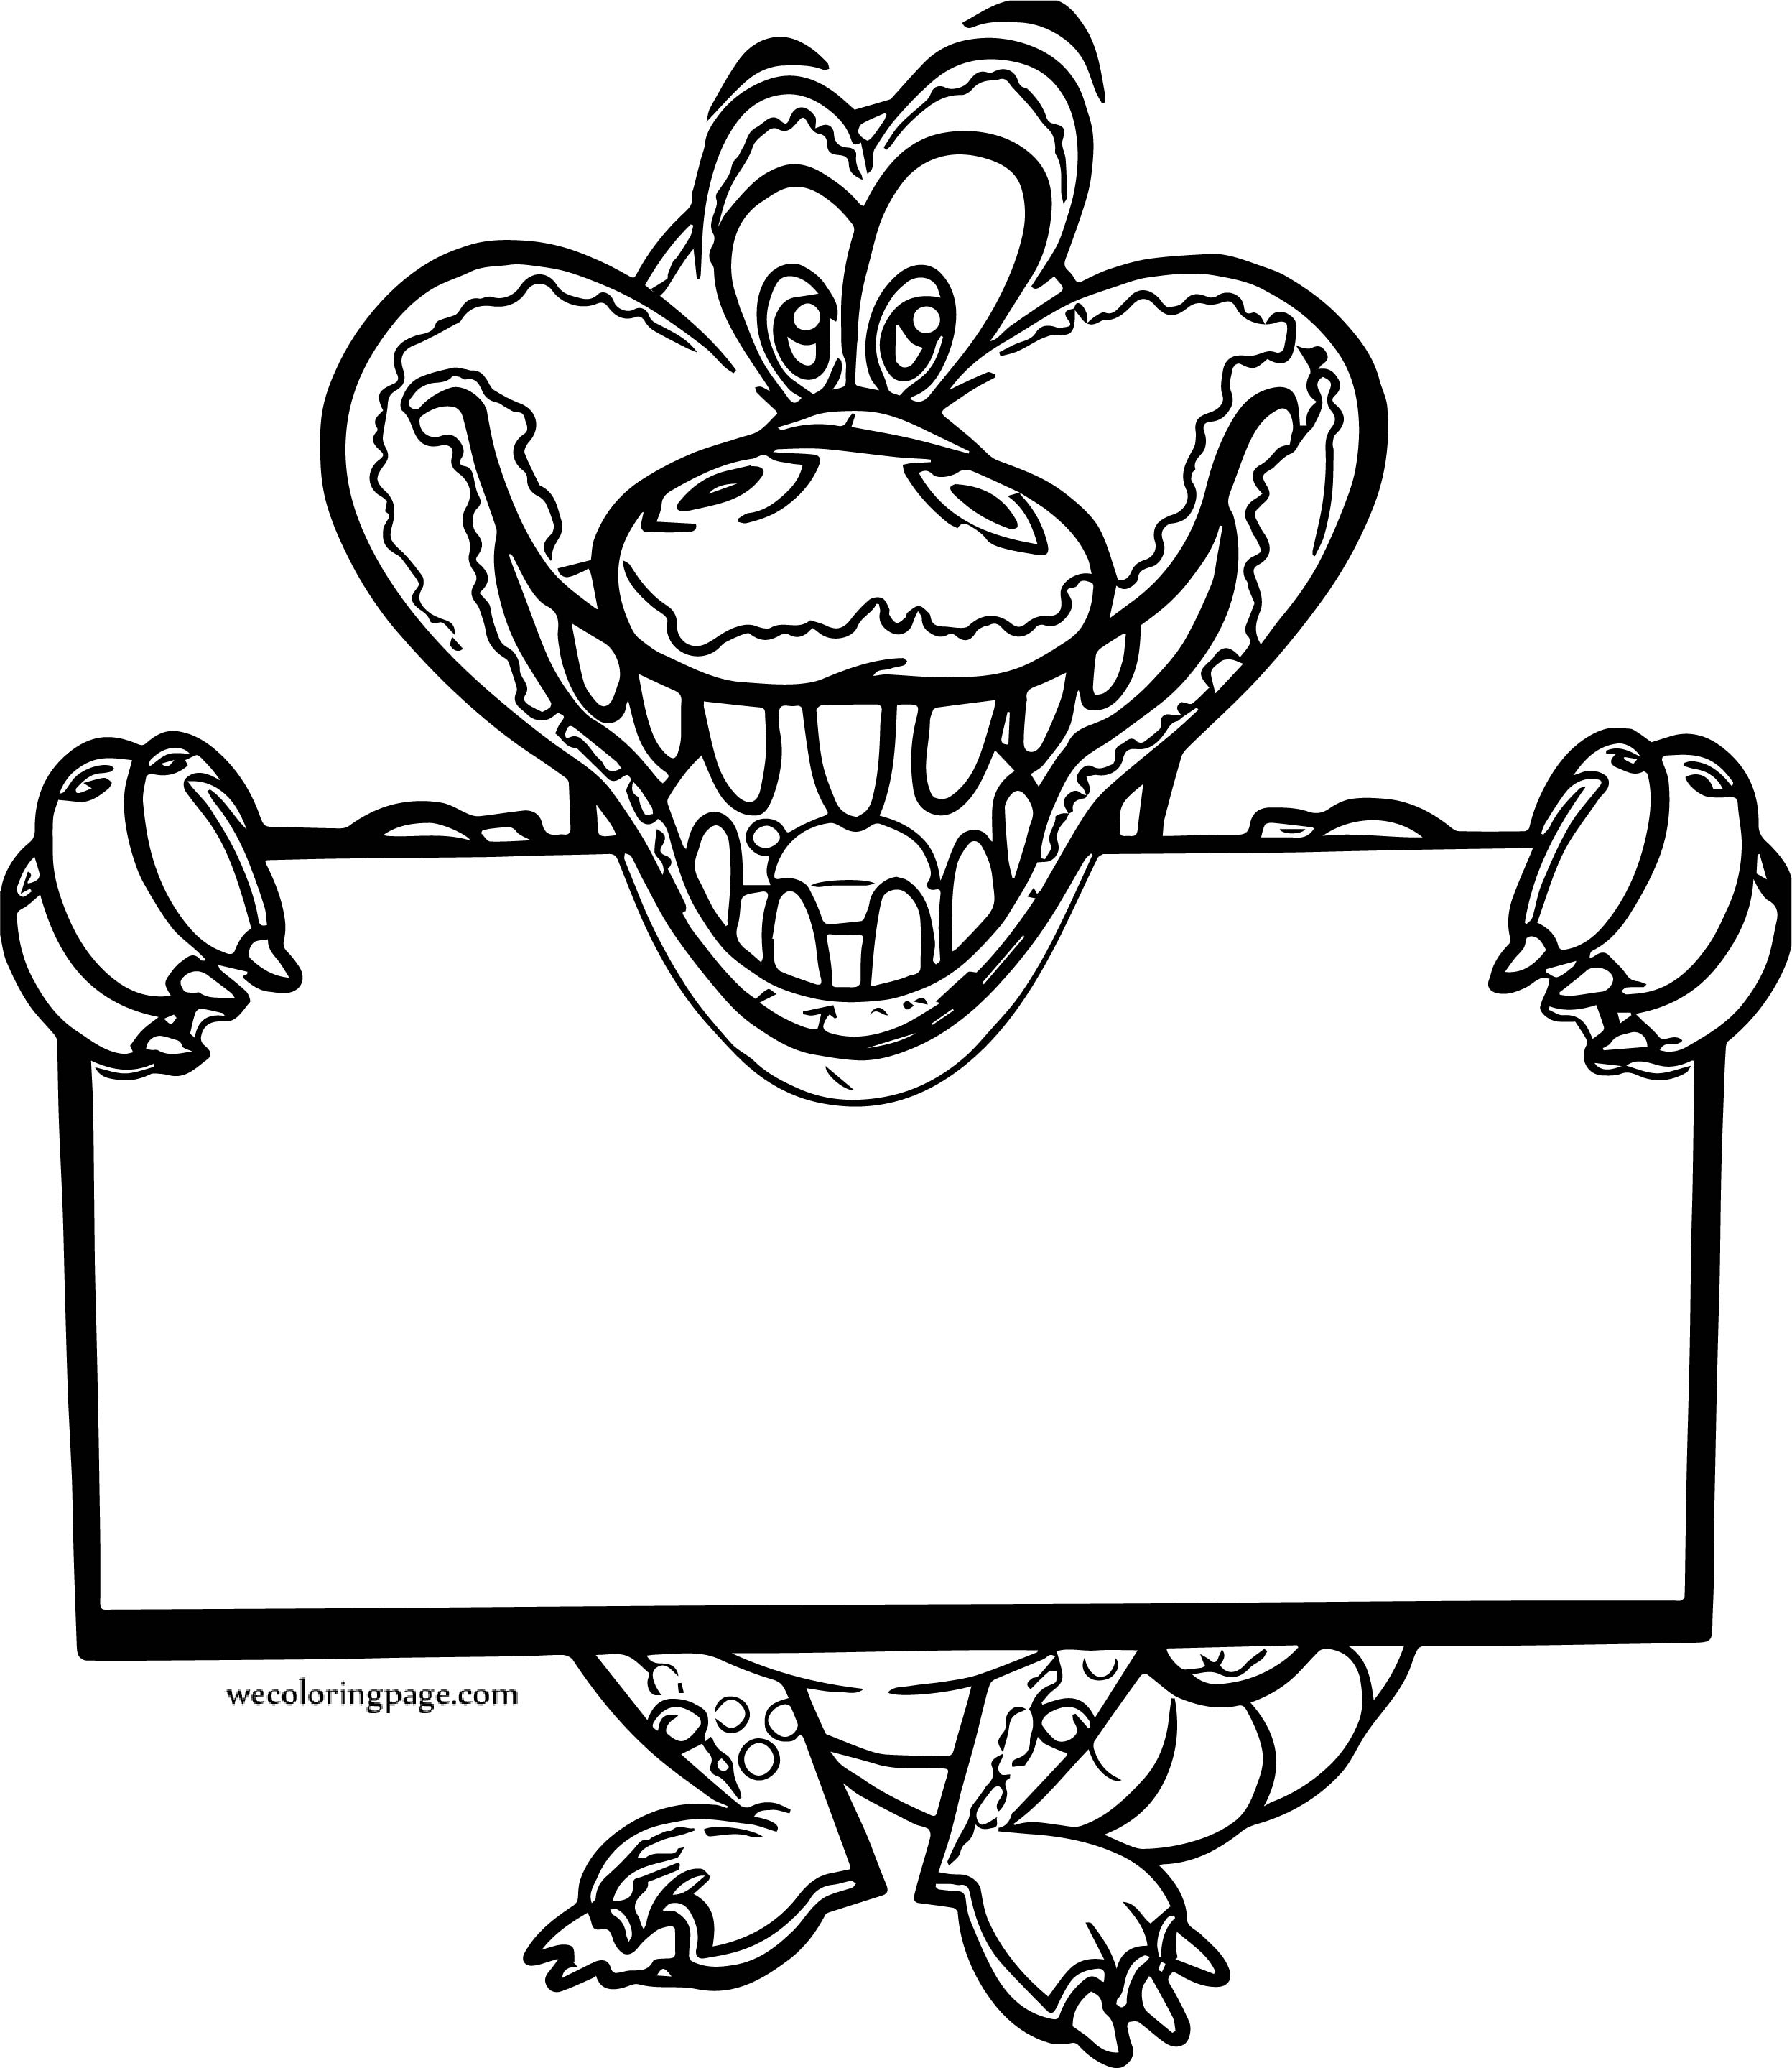 Crocodile Alligator Sign Coloring Page